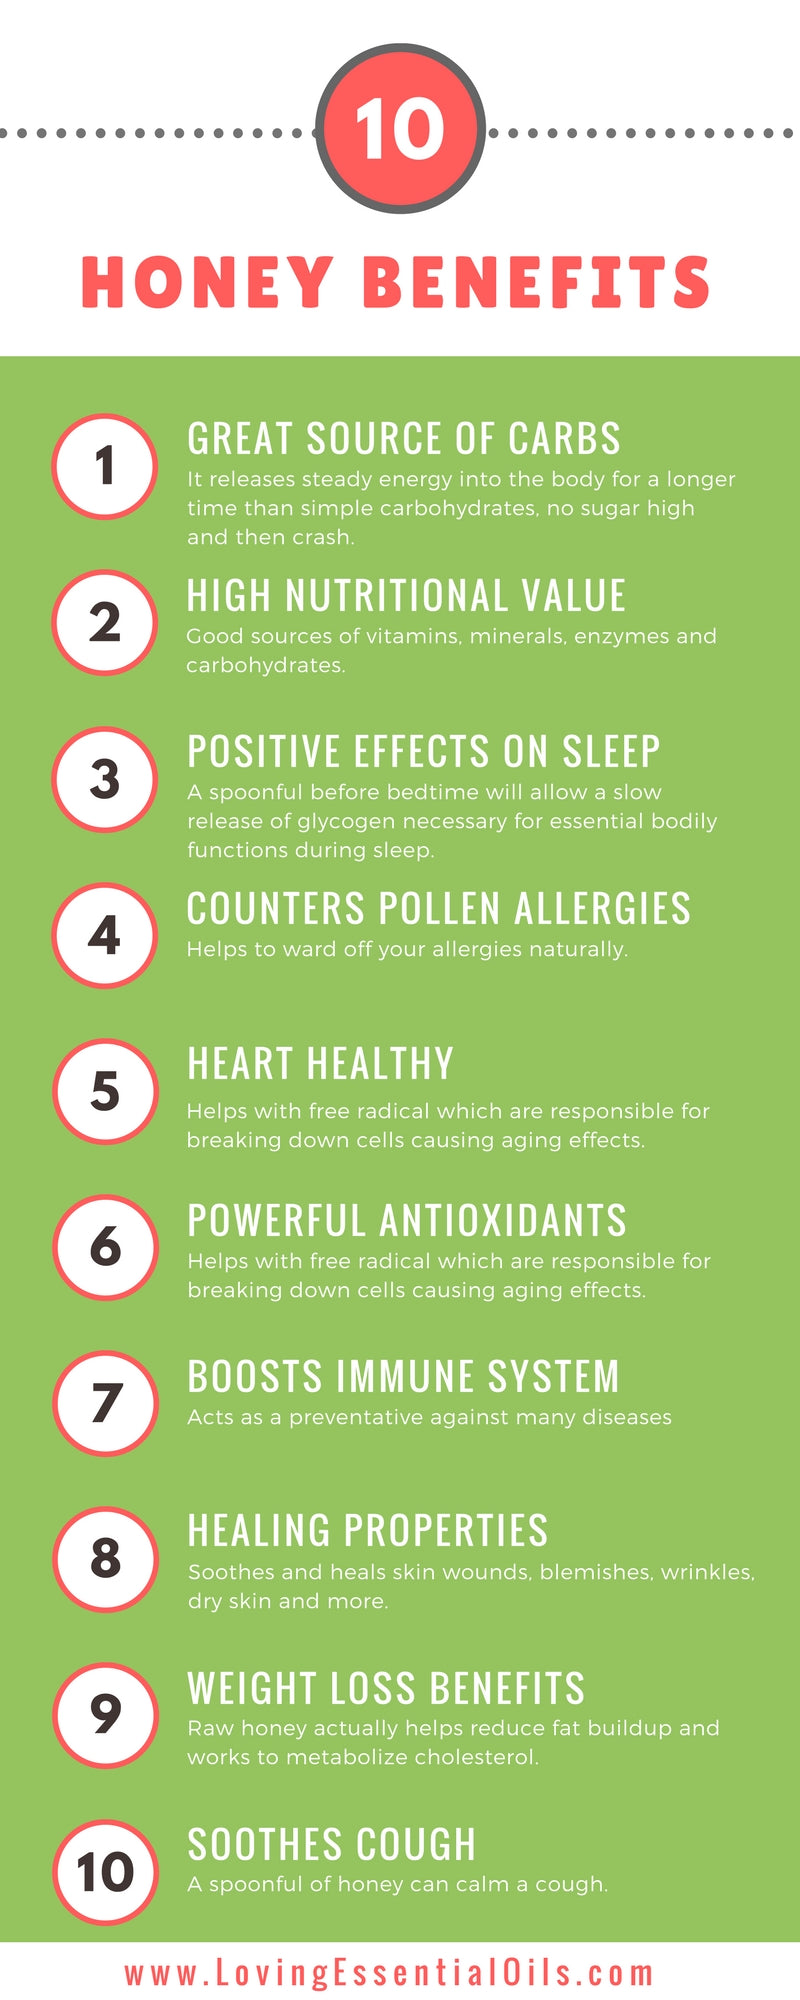 top 10 natural honey benefits for beauty, health and wellness by Loving Essential Oils